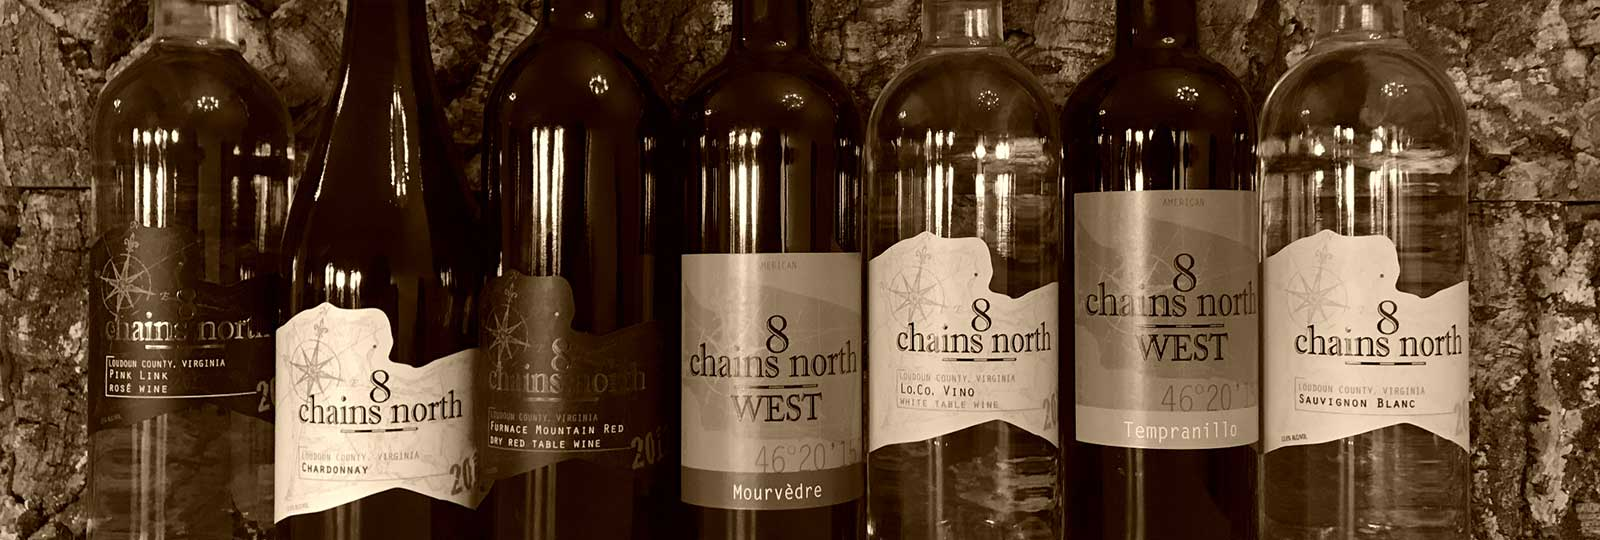 locally made wine by 8 Chains North Winery in Loudoun County